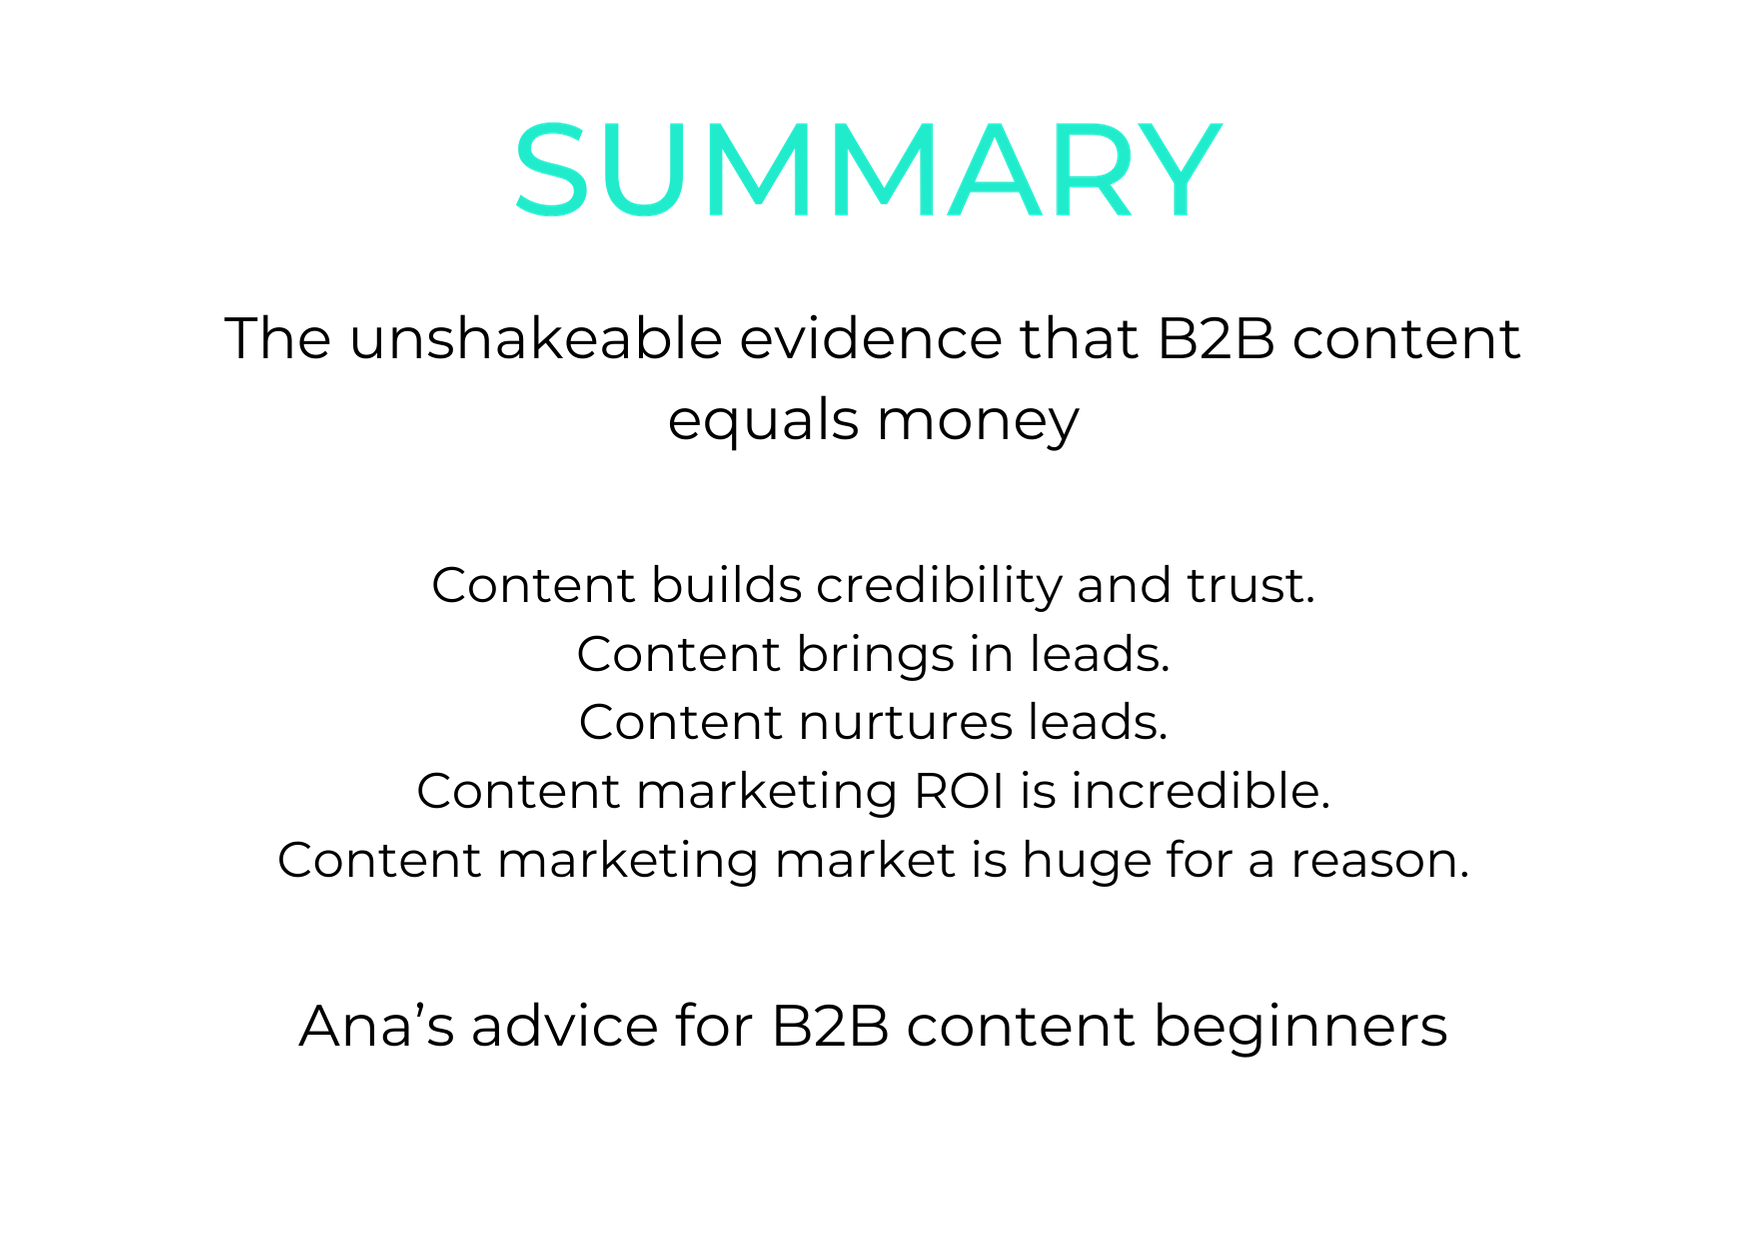 Summary of the article listed by points